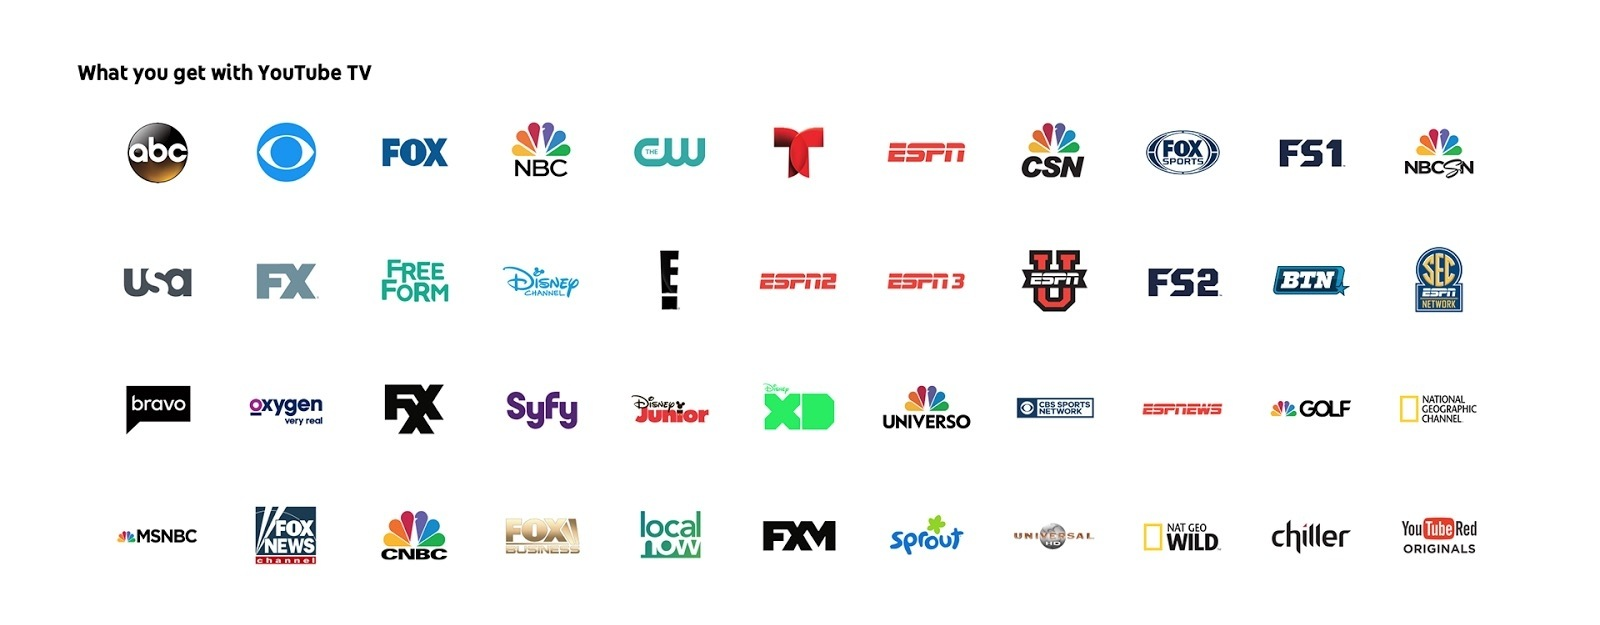 The full channel lineup for YouTube TV.